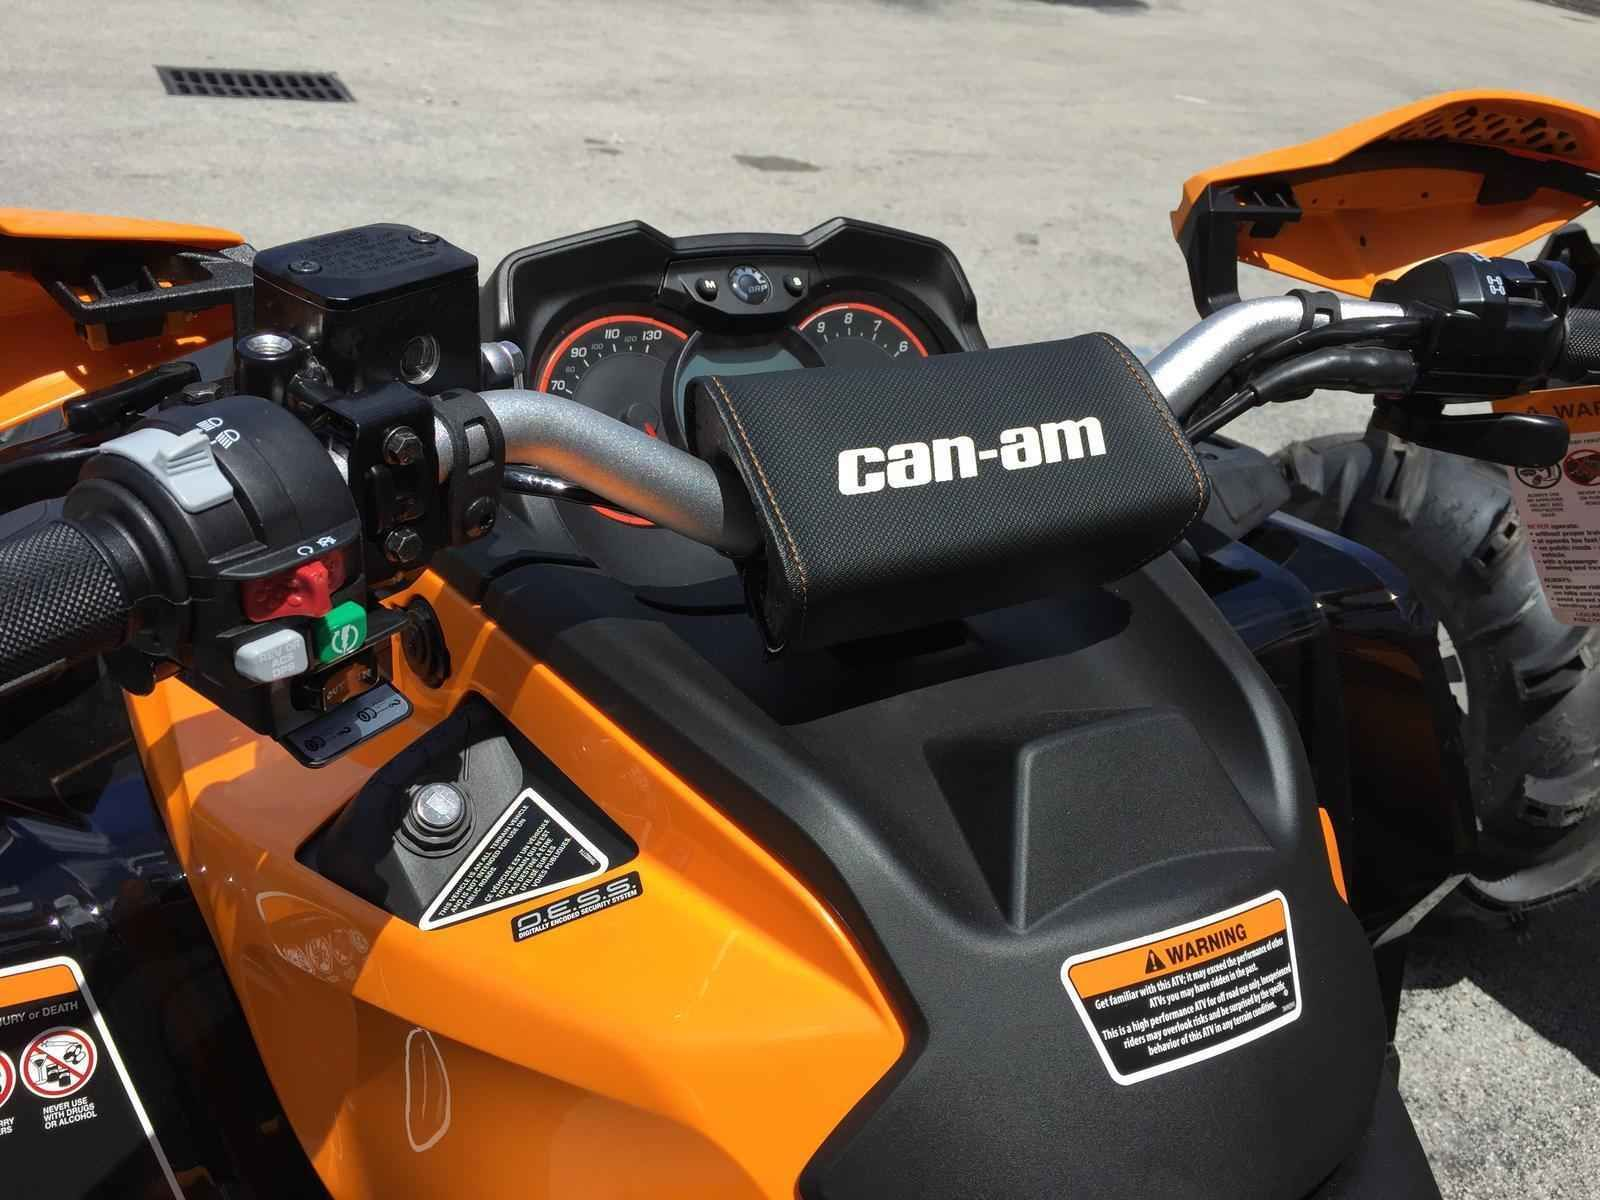 New 2015 Can Am OUTLANDER XT P 1000 ATVs For Sale in Florida 2015